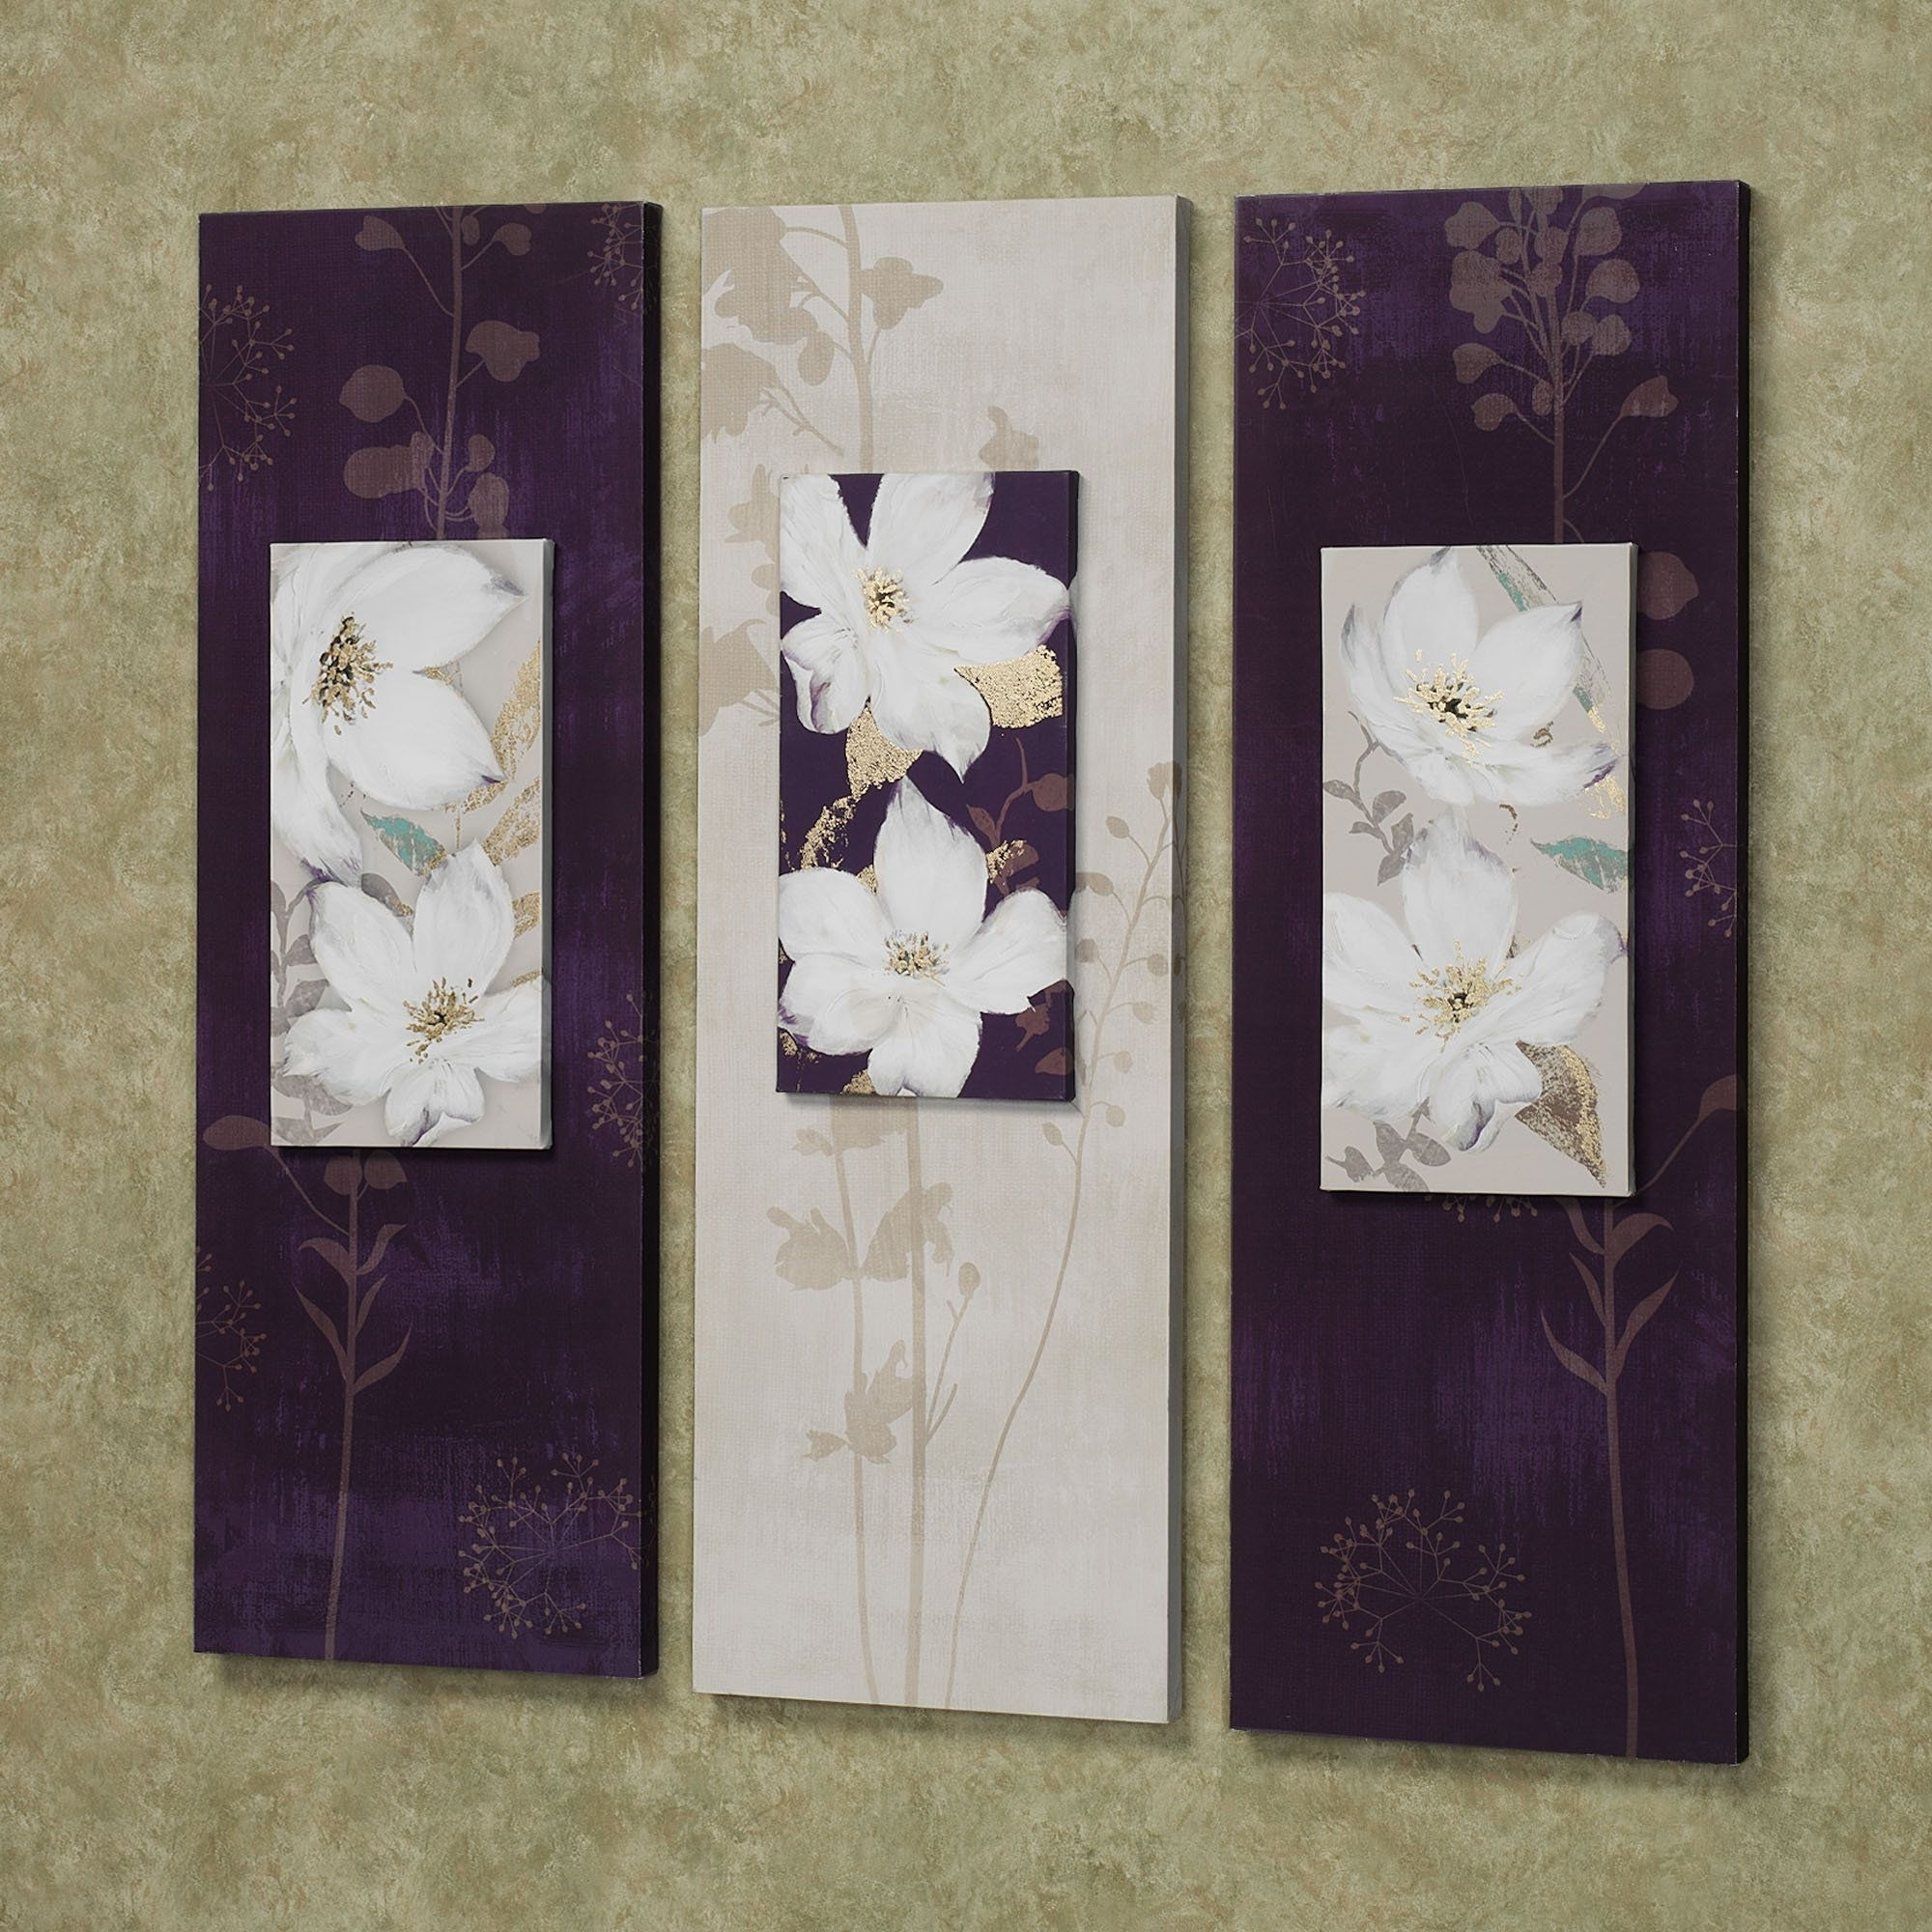 Garden Dance Floral Canvas Wall Art Set | Wall Art Sets, Canvases With Most Recent Canvas Wall Art In Purple (Gallery 1 of 15)